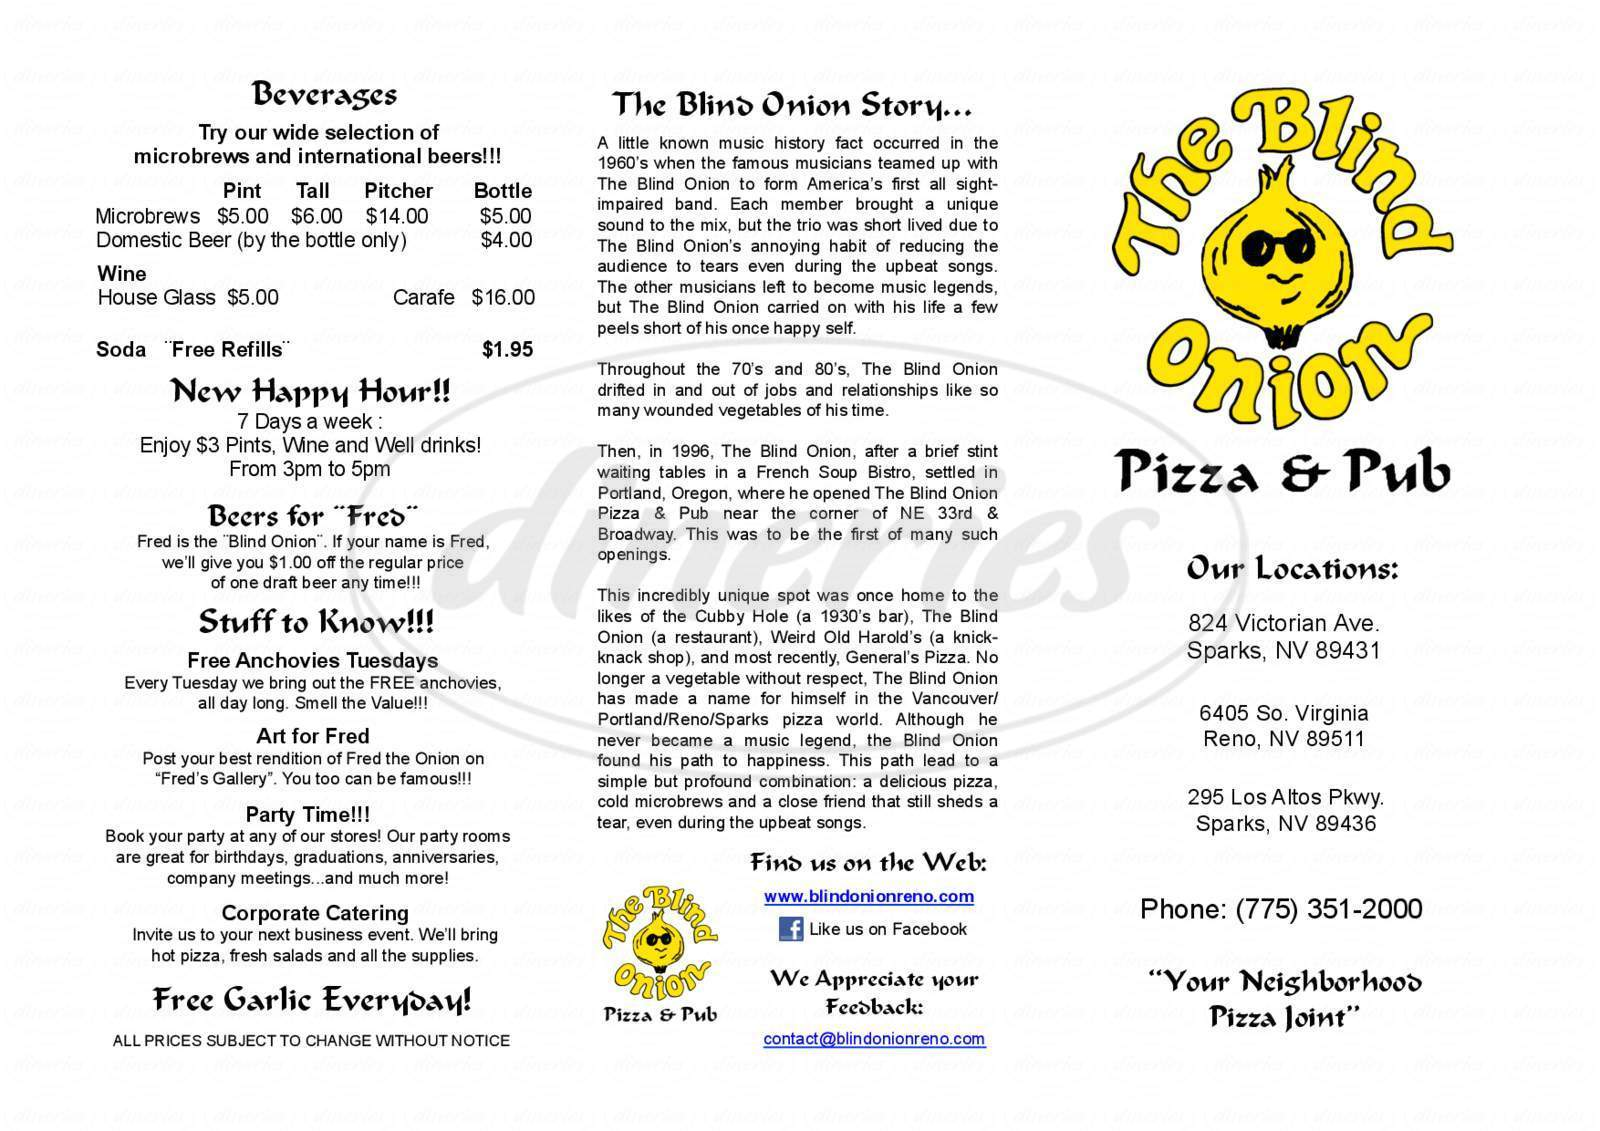 menu for The Blind Onion Pizza & Pub